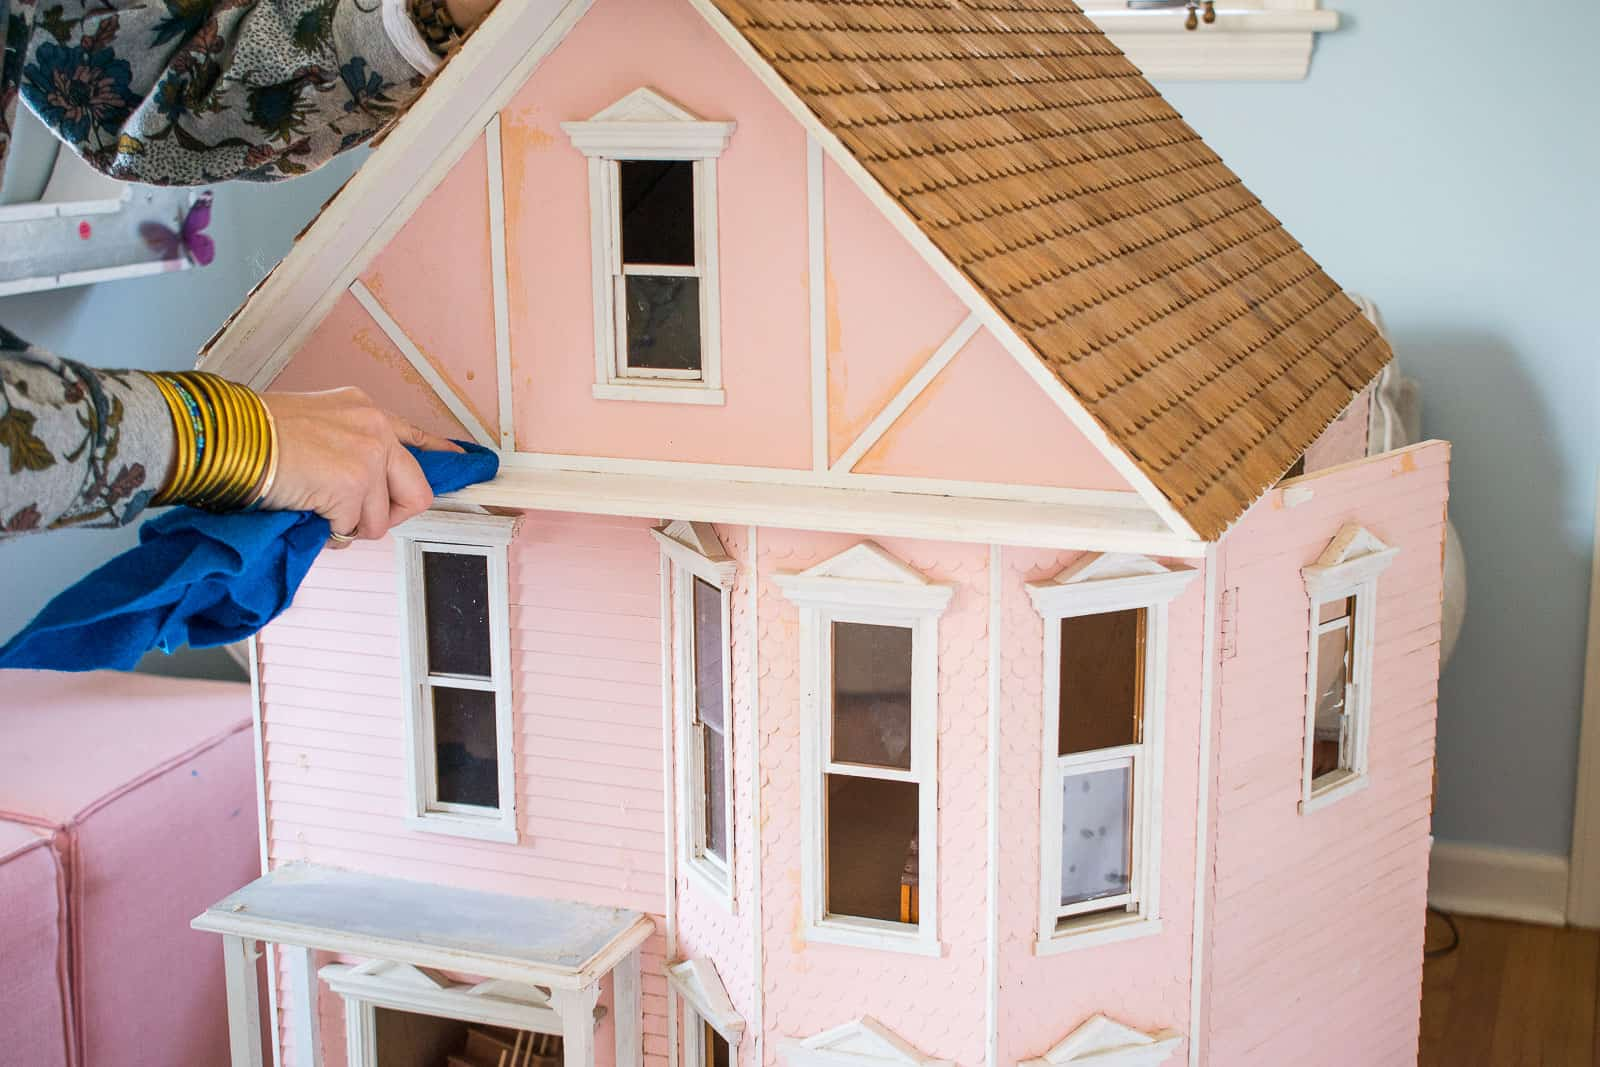 cleaning the dollhouse exterior